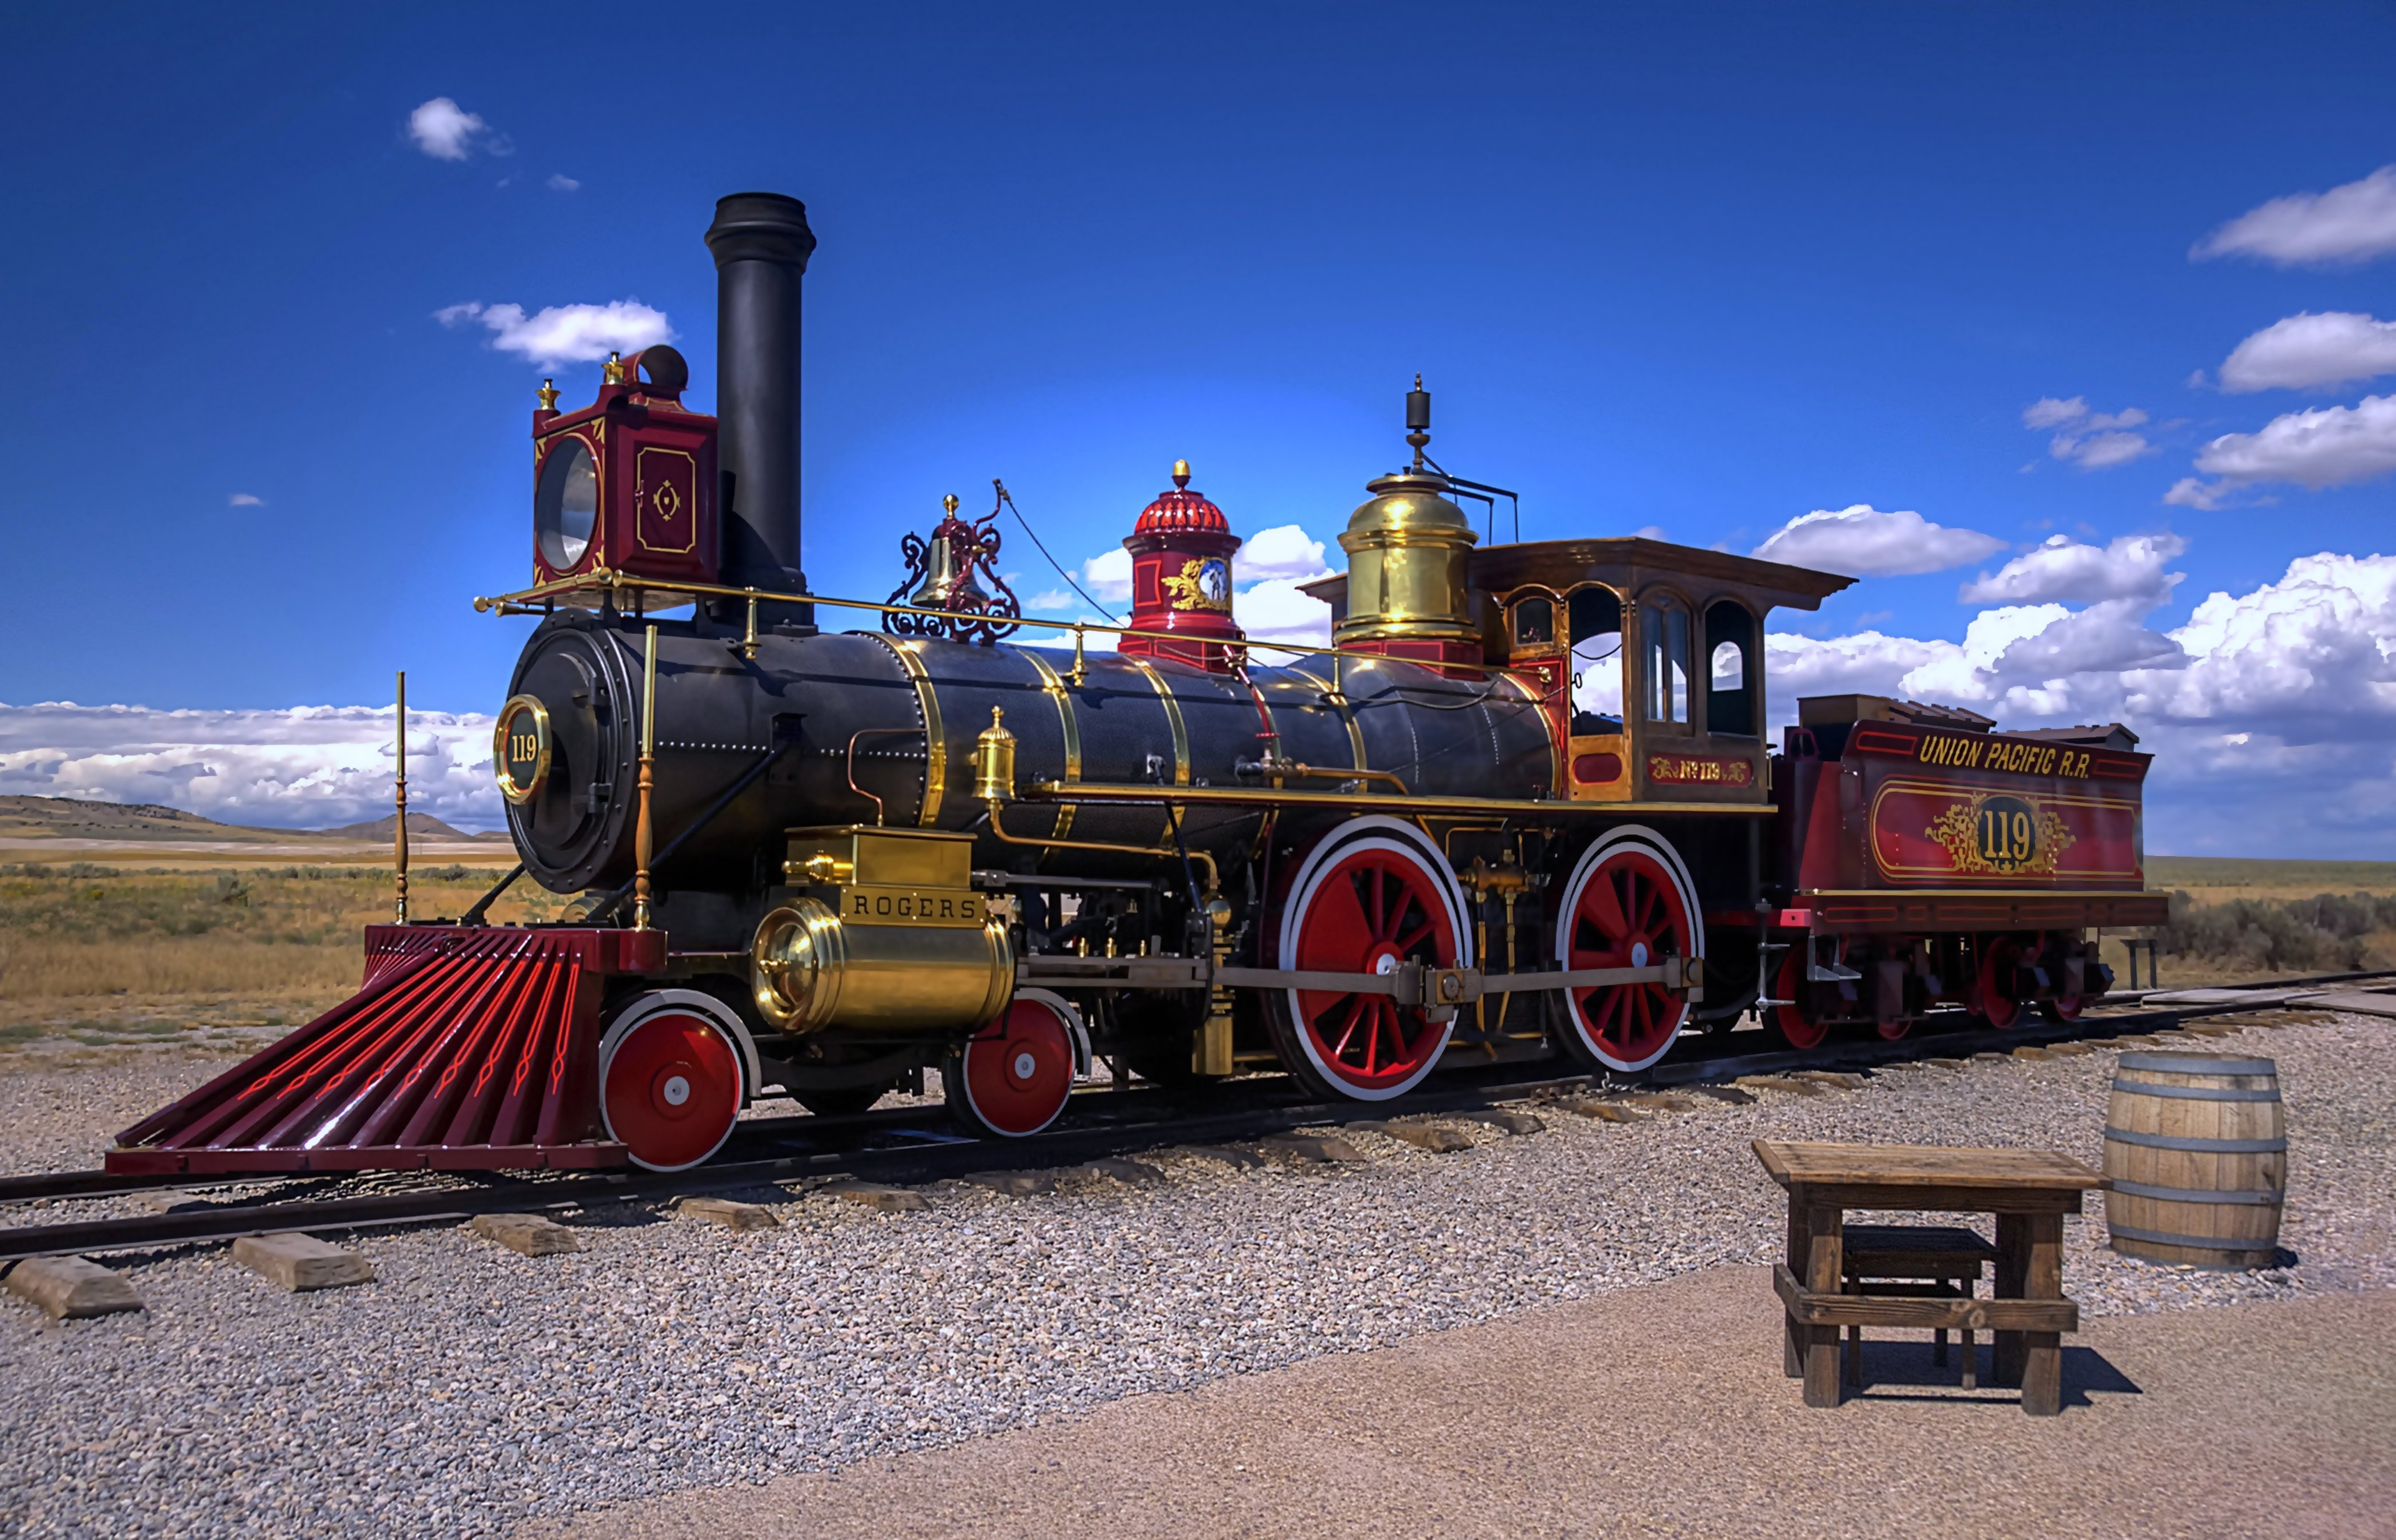 Trains Old Classic Railroad Landscapes Sky Clouds Sunny Chair Wallpaper 3840x2468 651237